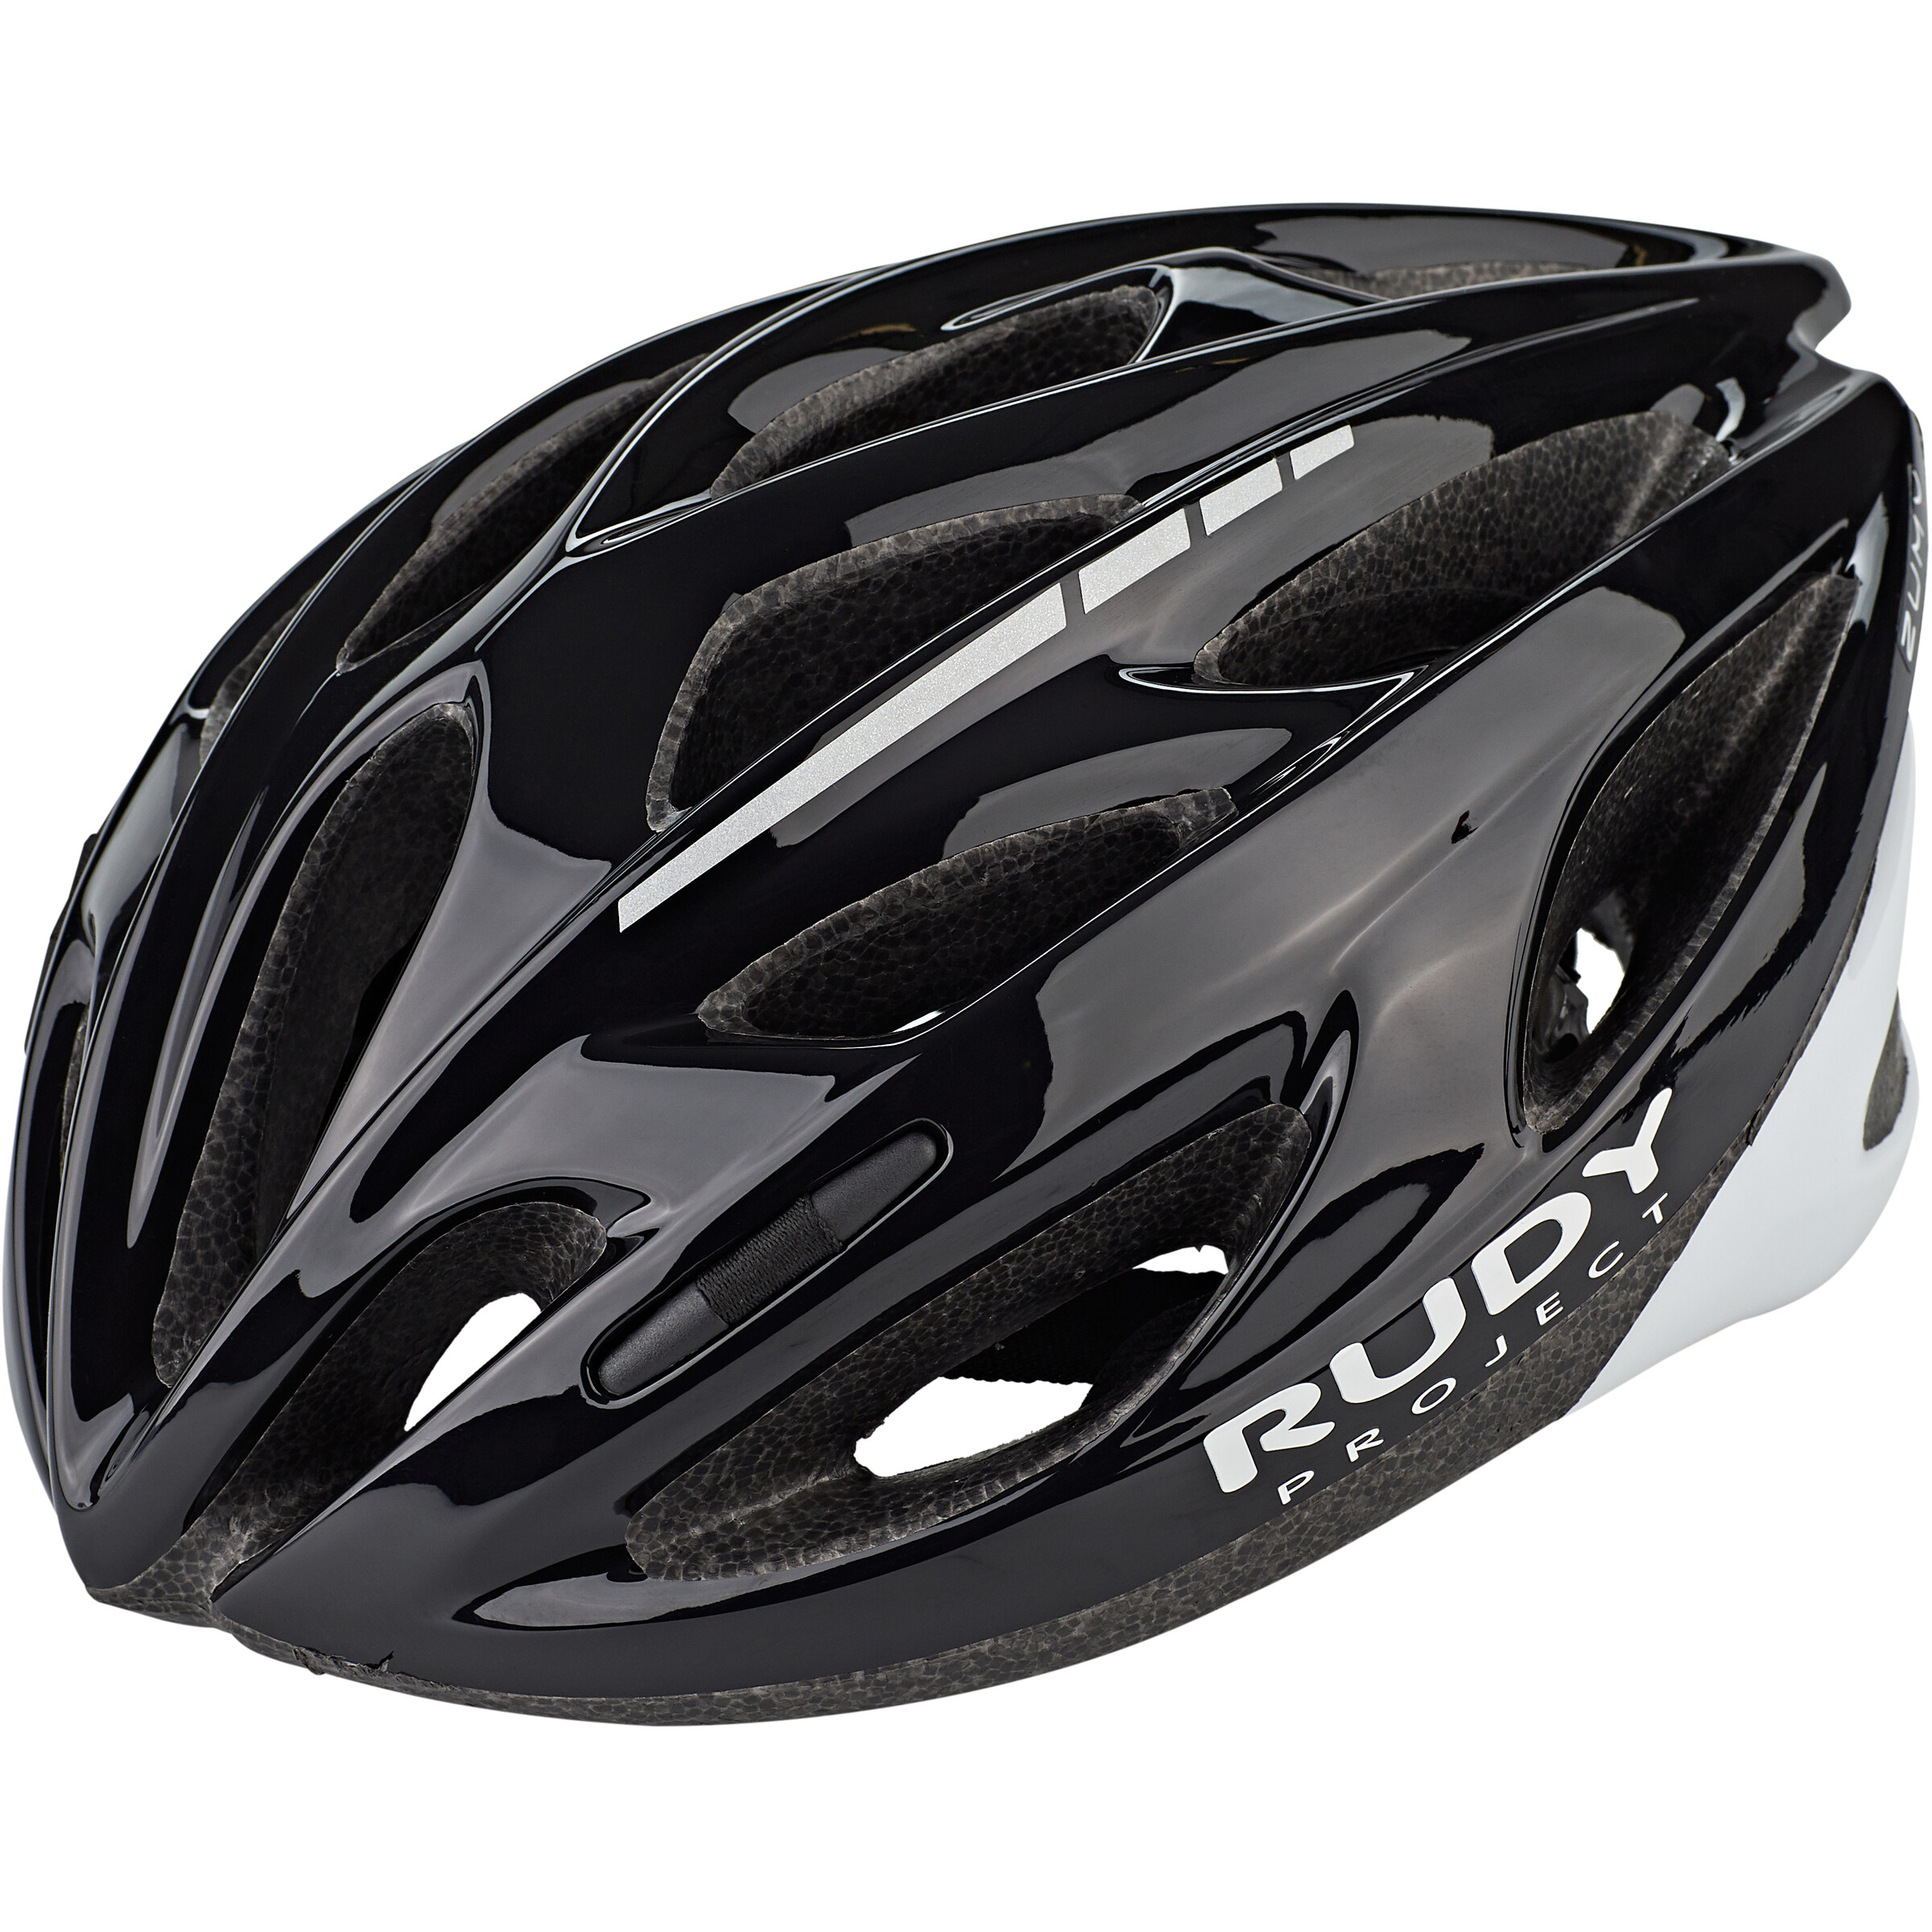 Rudy Project Zumy helm